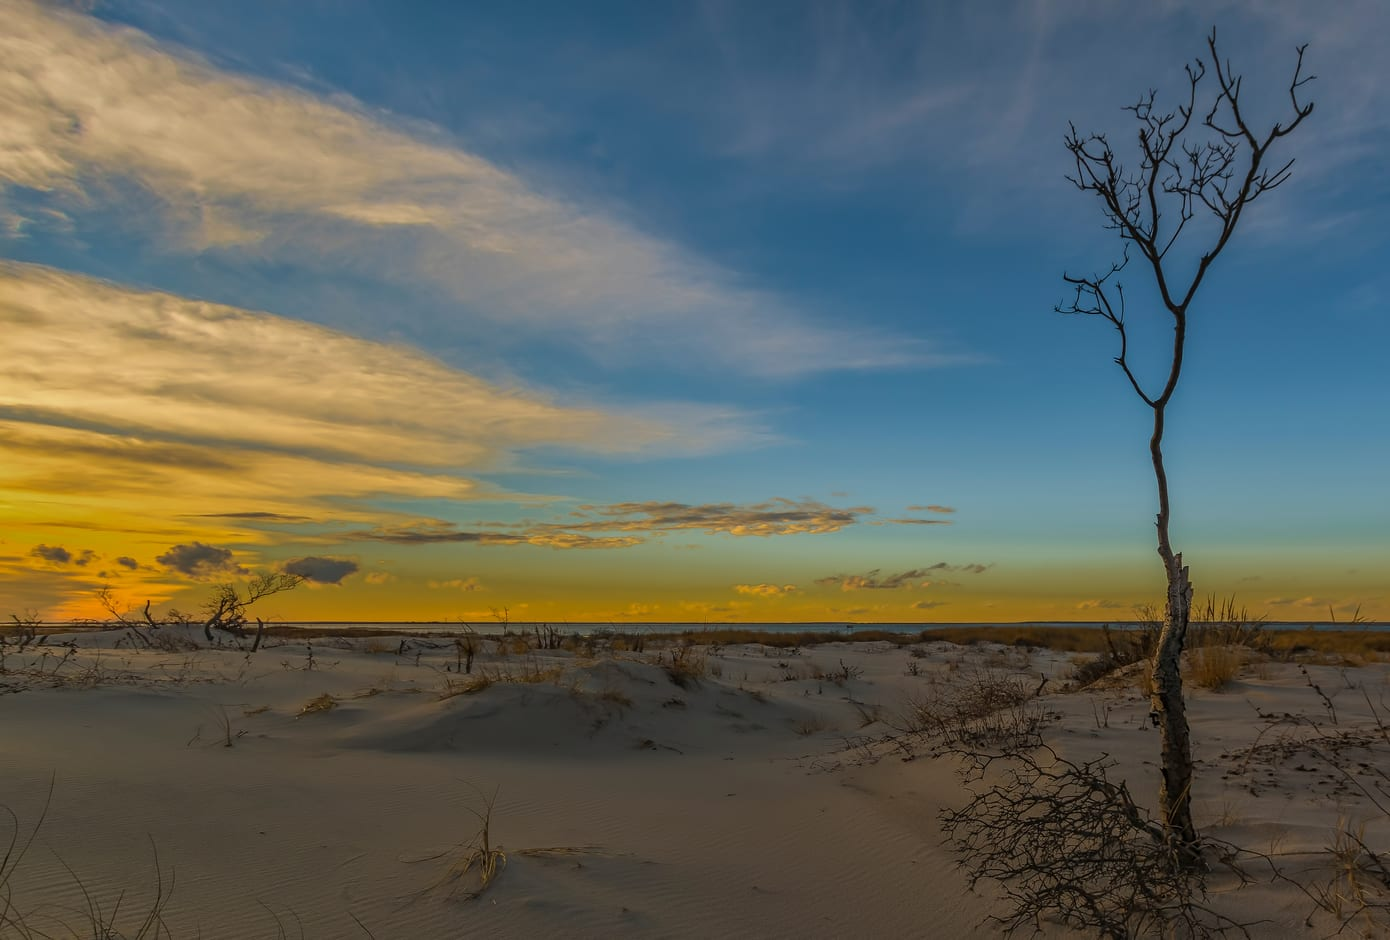 Sunset at the Edwin B. Forsythe National Wildlife Refuge in Long Beach Township, New Jersey